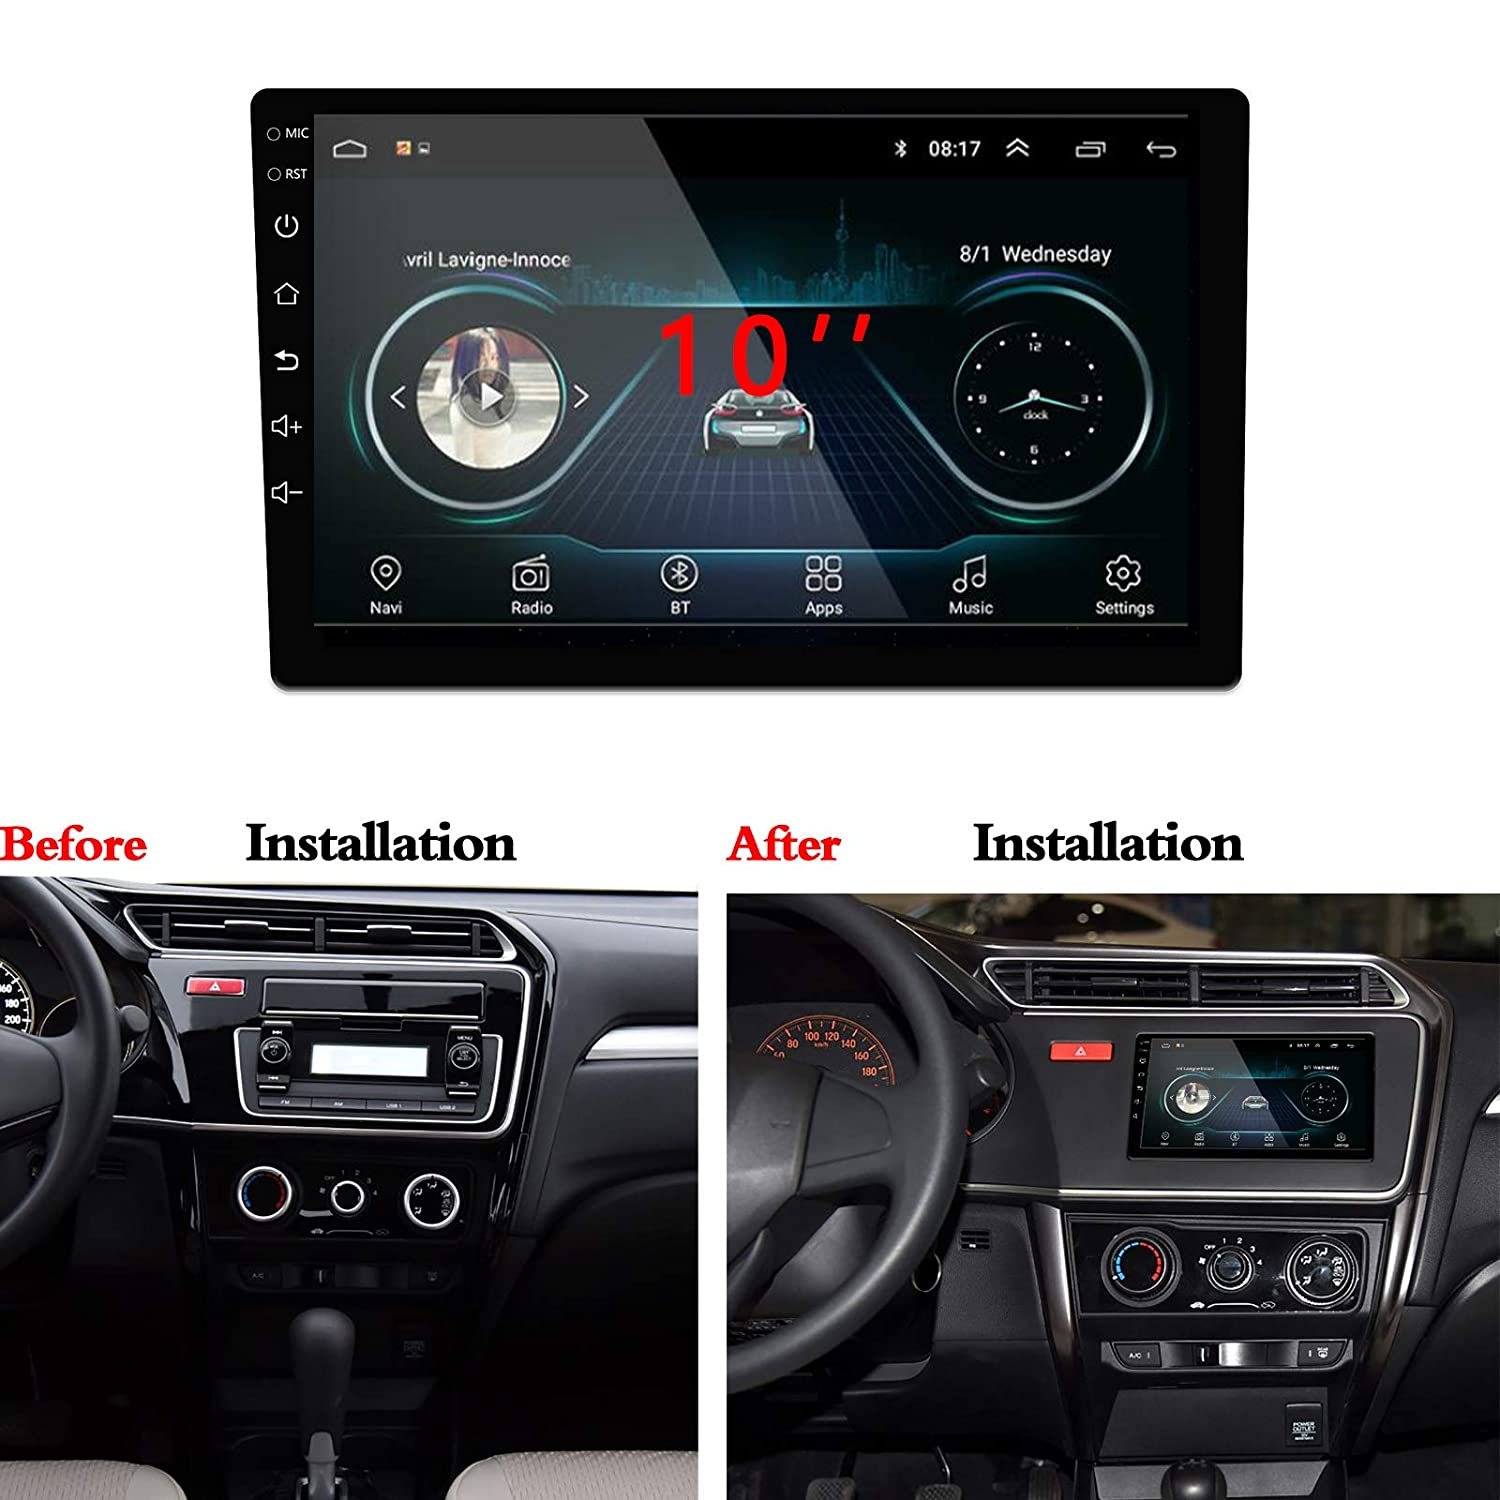 Lexxson 10.1inch Android 6.0 Car Radio 1024x600 GPS Navigation Bluetooth USB Player 1G DDR3 16G NAND Memory Flash CKDA10